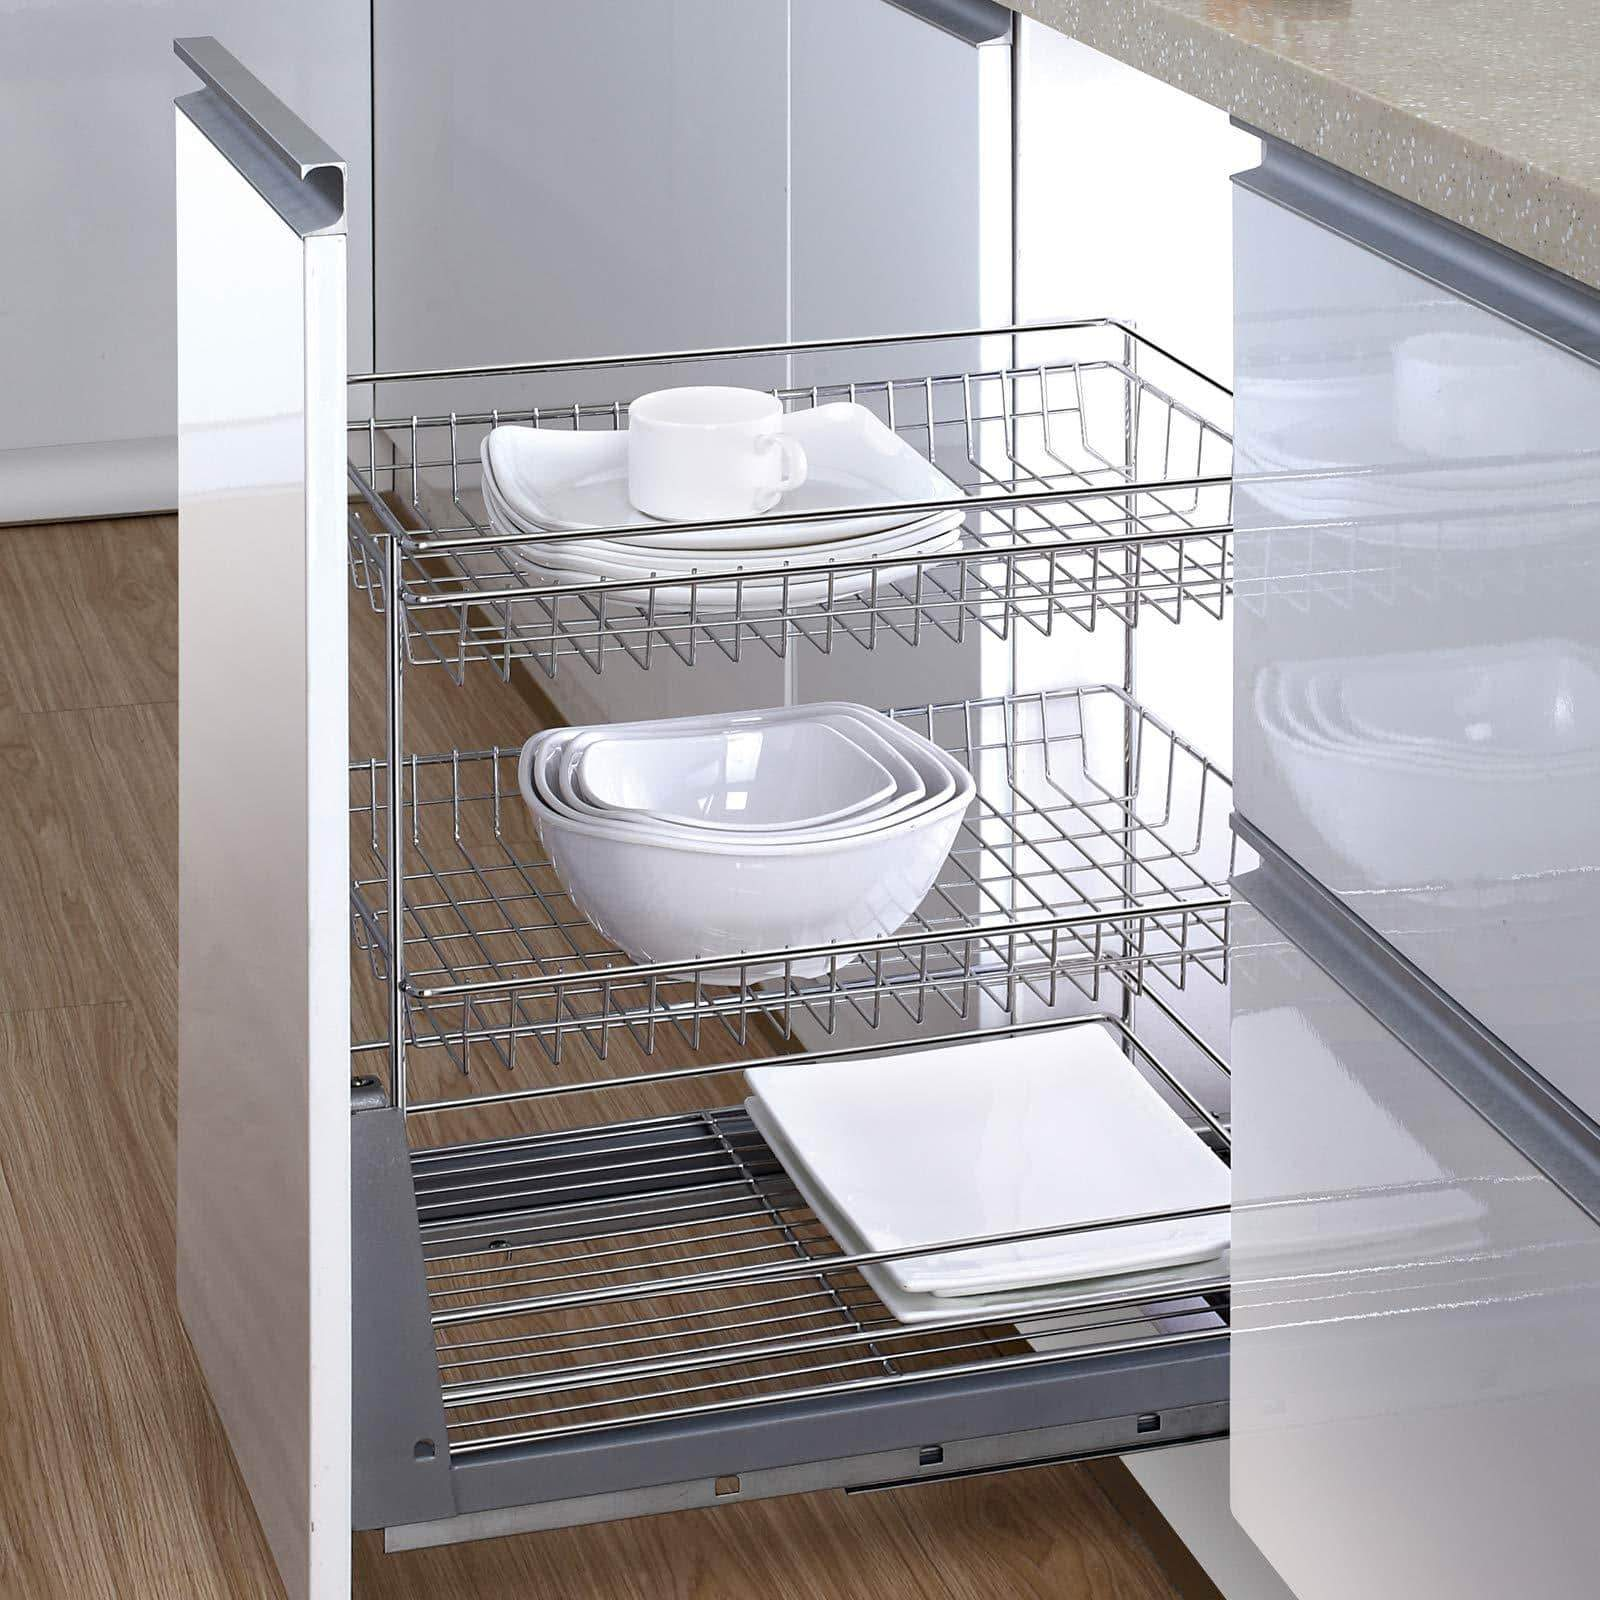 Organize with 17 6 in length cabinet pull out chrome wire basket organizer 3 tier cabinet spice rack shelves bowl pan pots holder full pullout set